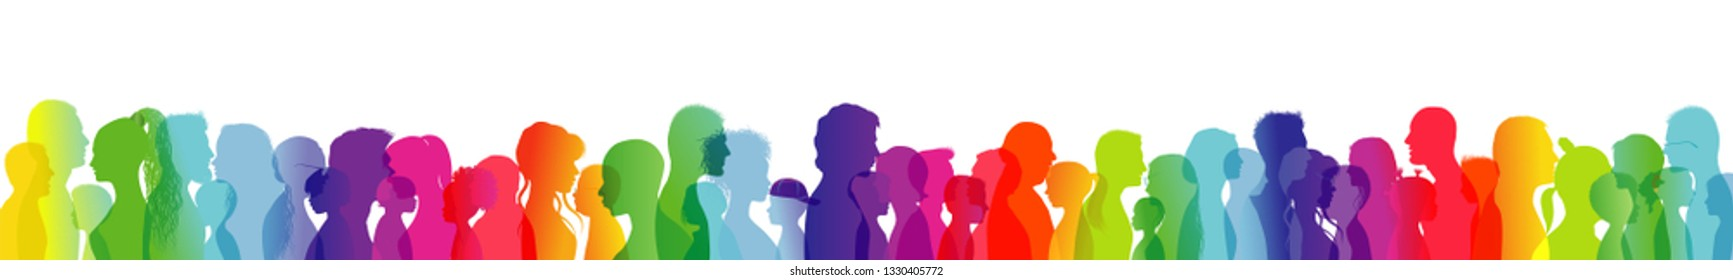 Crowd talking. Dialogue between people of different ages and ethnic groups. Rainbow colored profile silhouette. Many different people talking. Diversity between people. Multiple exposure